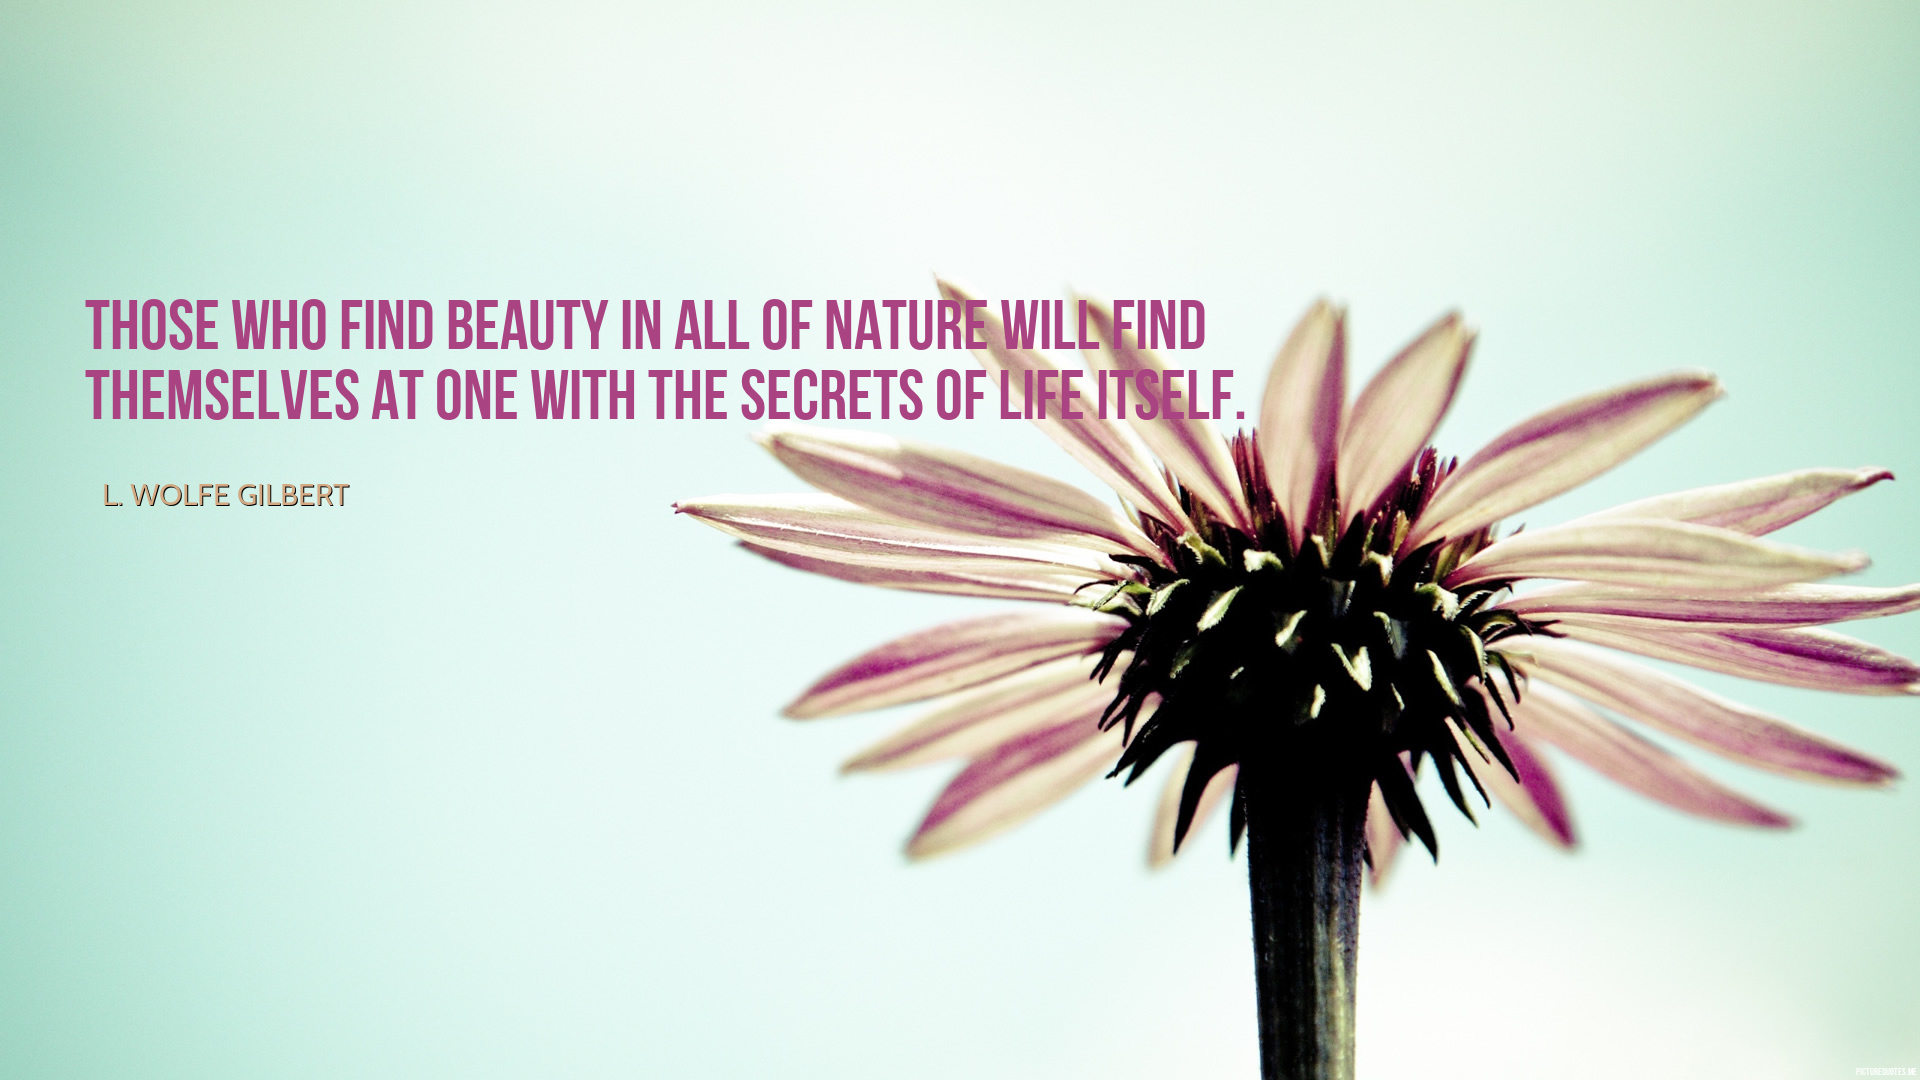 l_wolfe_gilbert_quote_those_who_find_beauty_in_all_of_nature_will_find_themselves_at_one_with_the_secrets_of_life_itself_5929-1.jpg